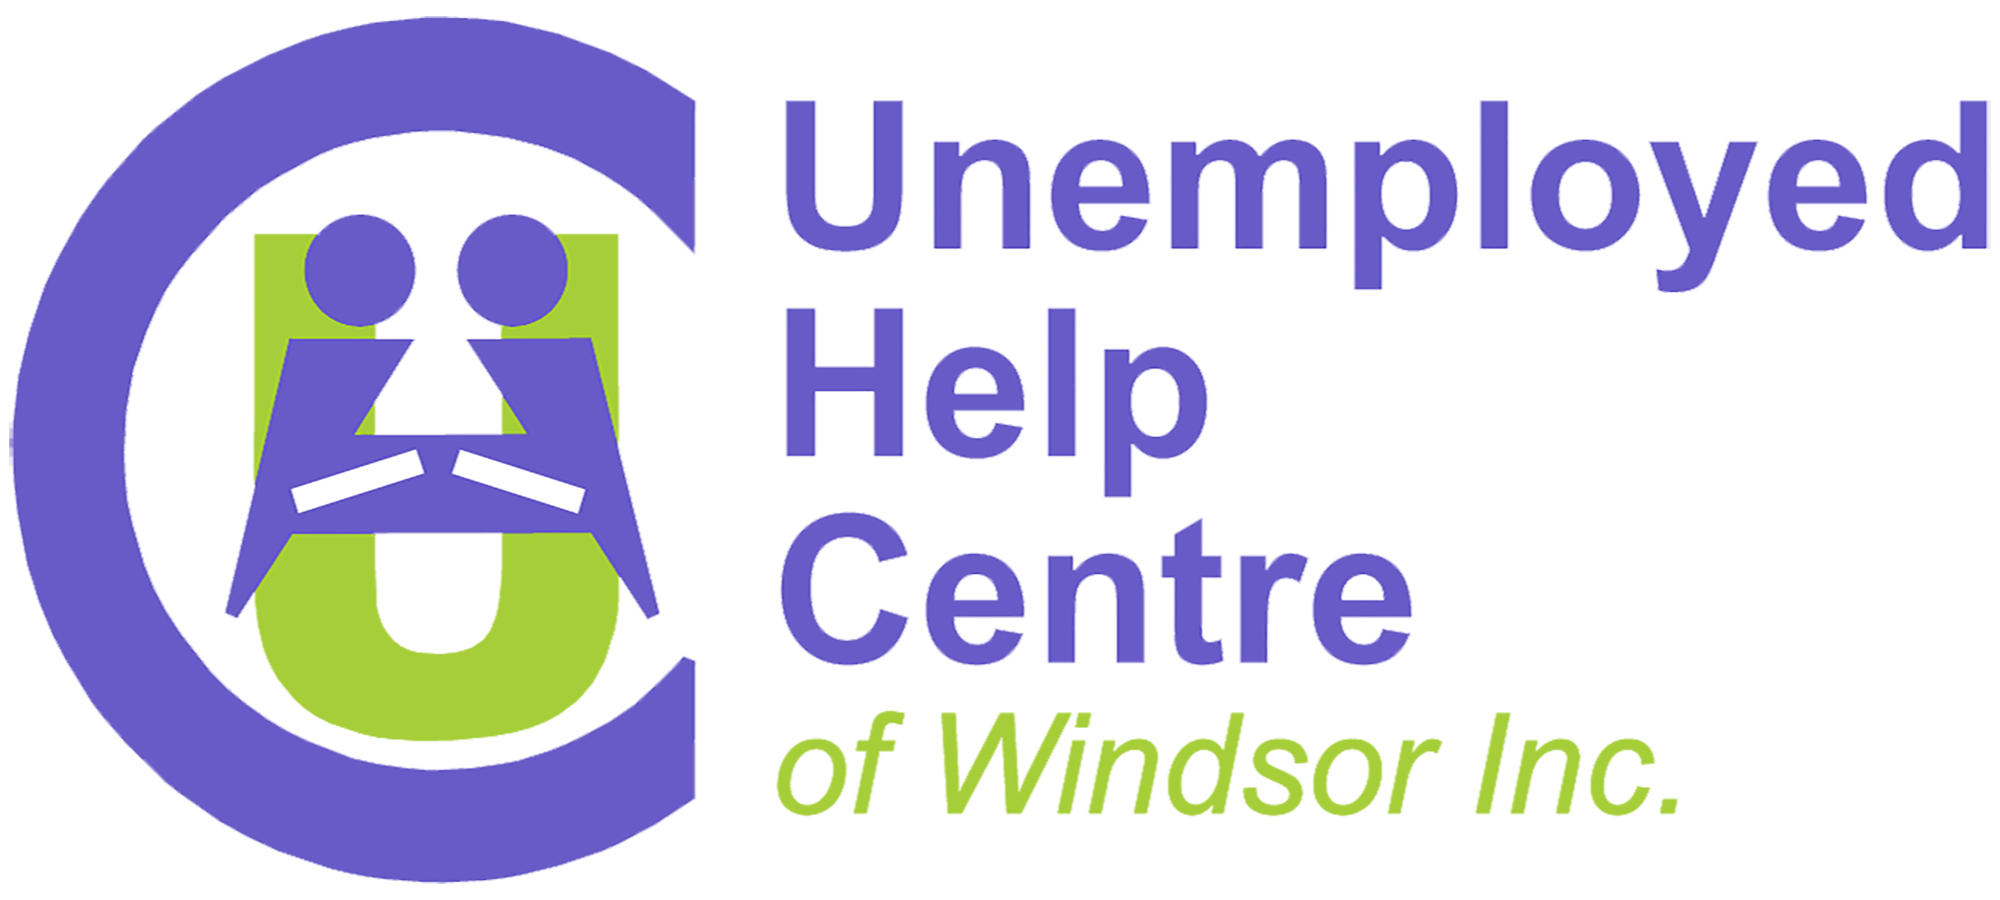 images/partnerPool/windsor/charities/UHC Logo_Transparent.png